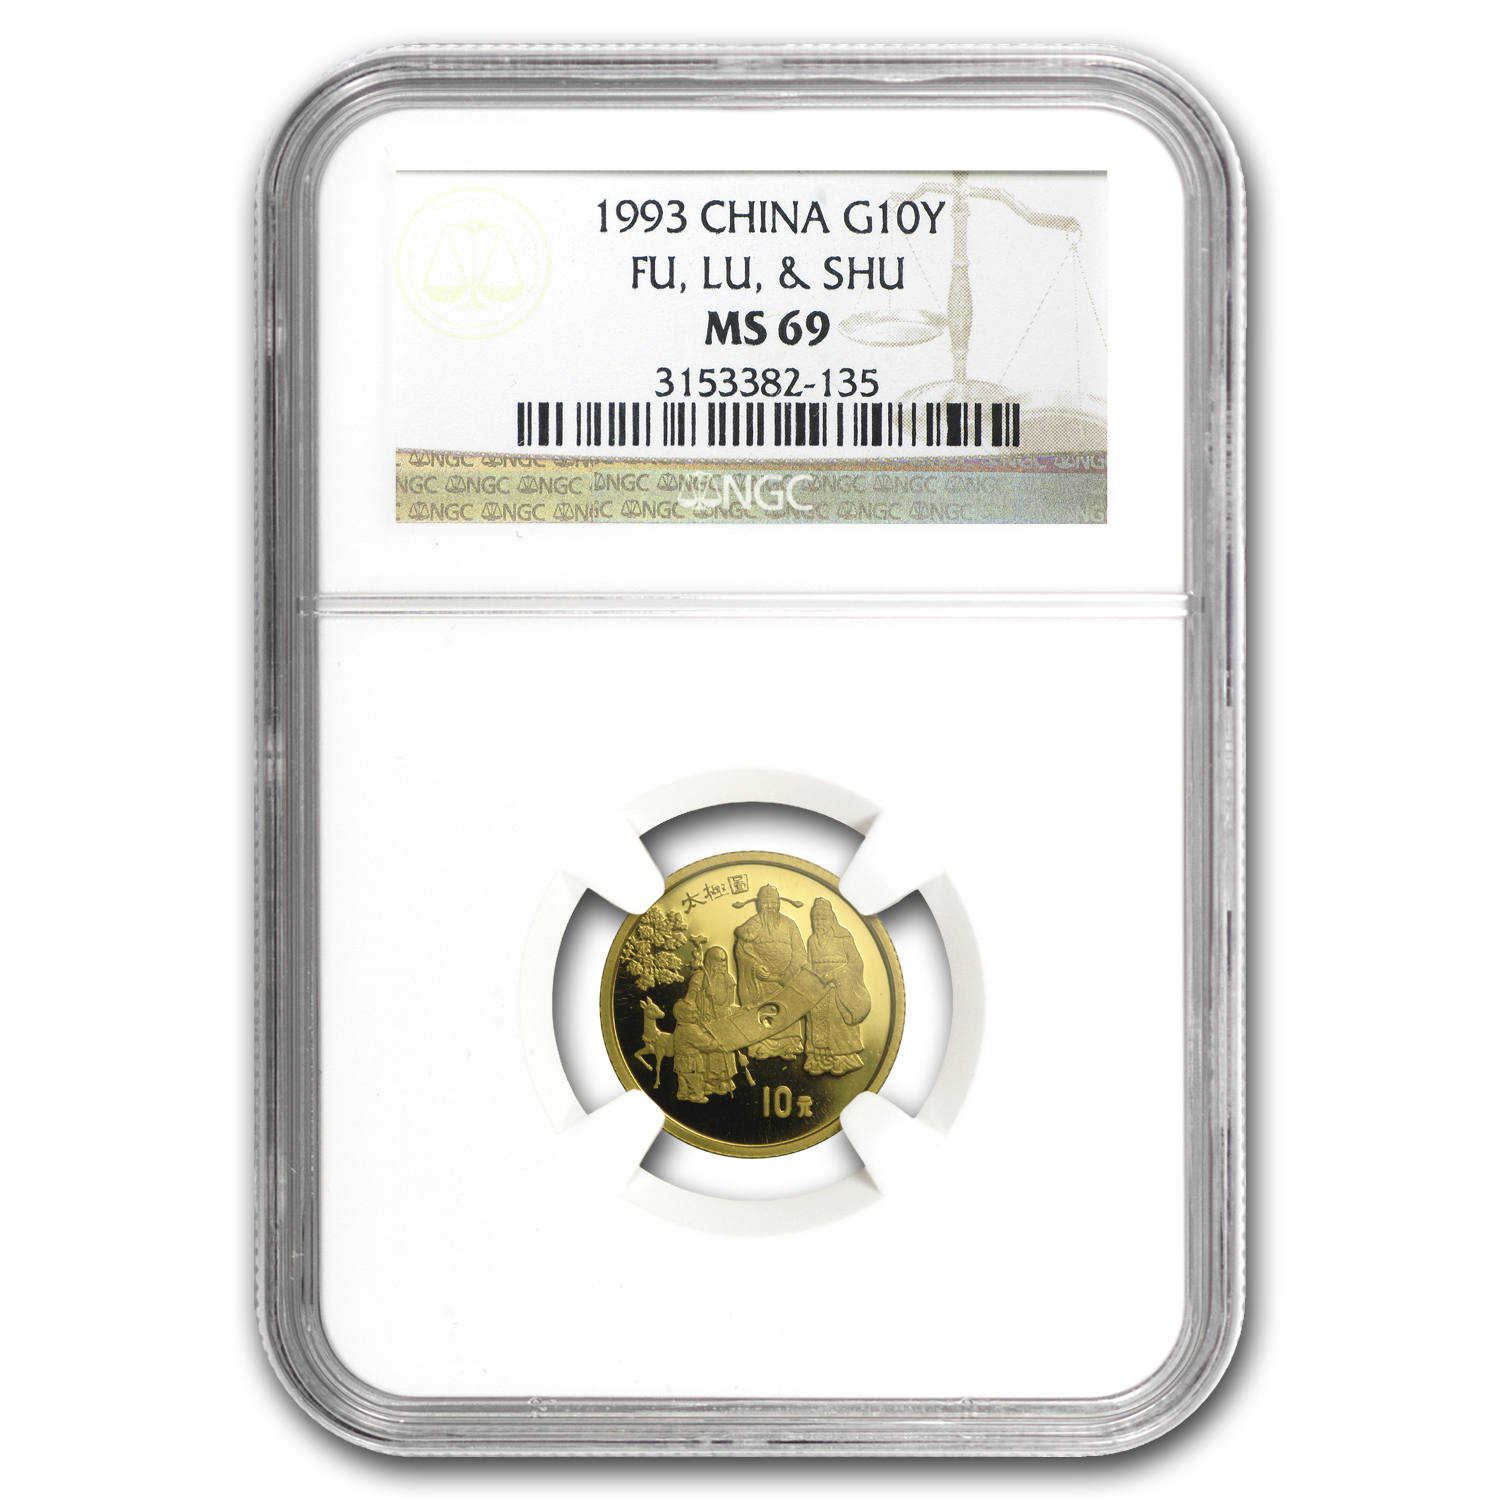 1993 China 1/10 oz Gold 10 Yuan Fu, Lu, & Shu MS-69 NGC